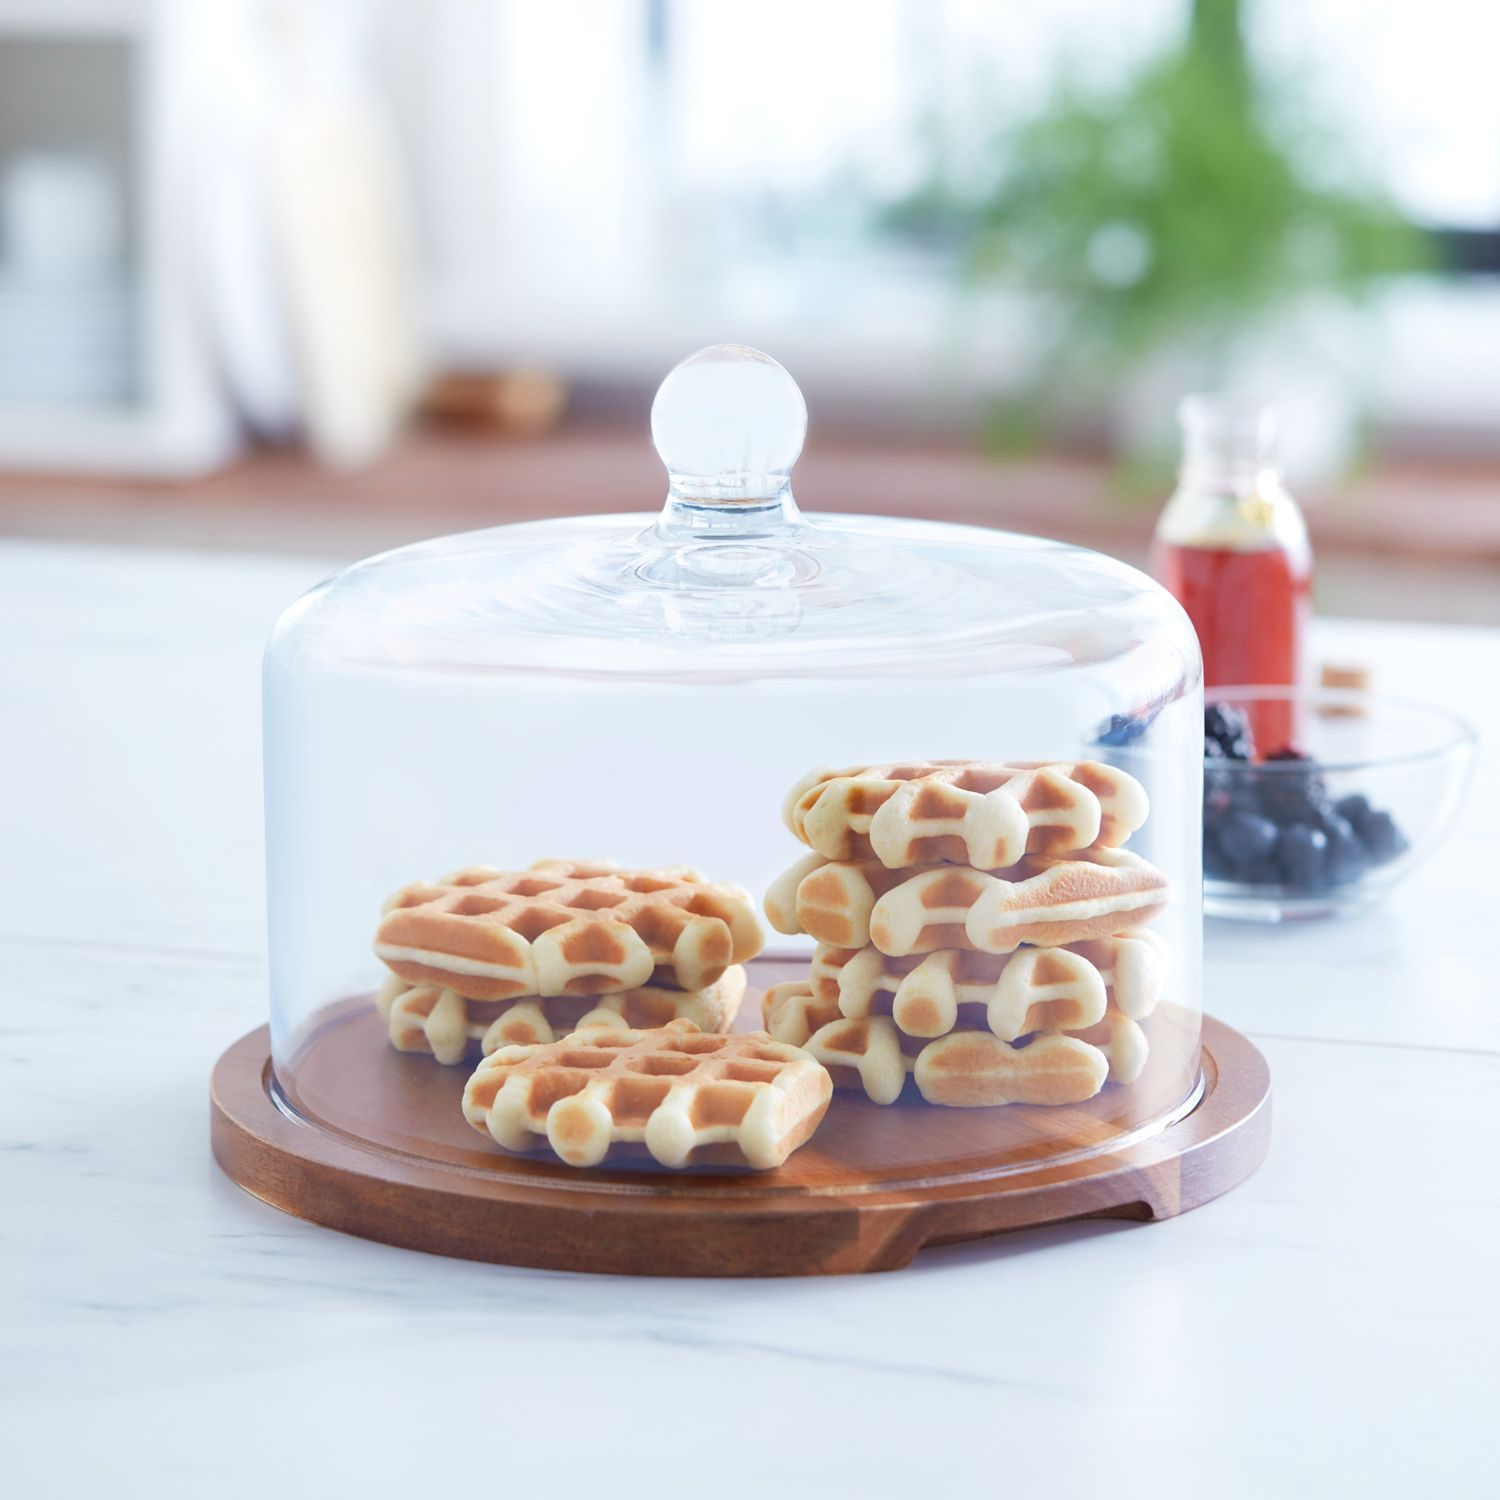 Libbey flat round wood server with glass dome wood cake